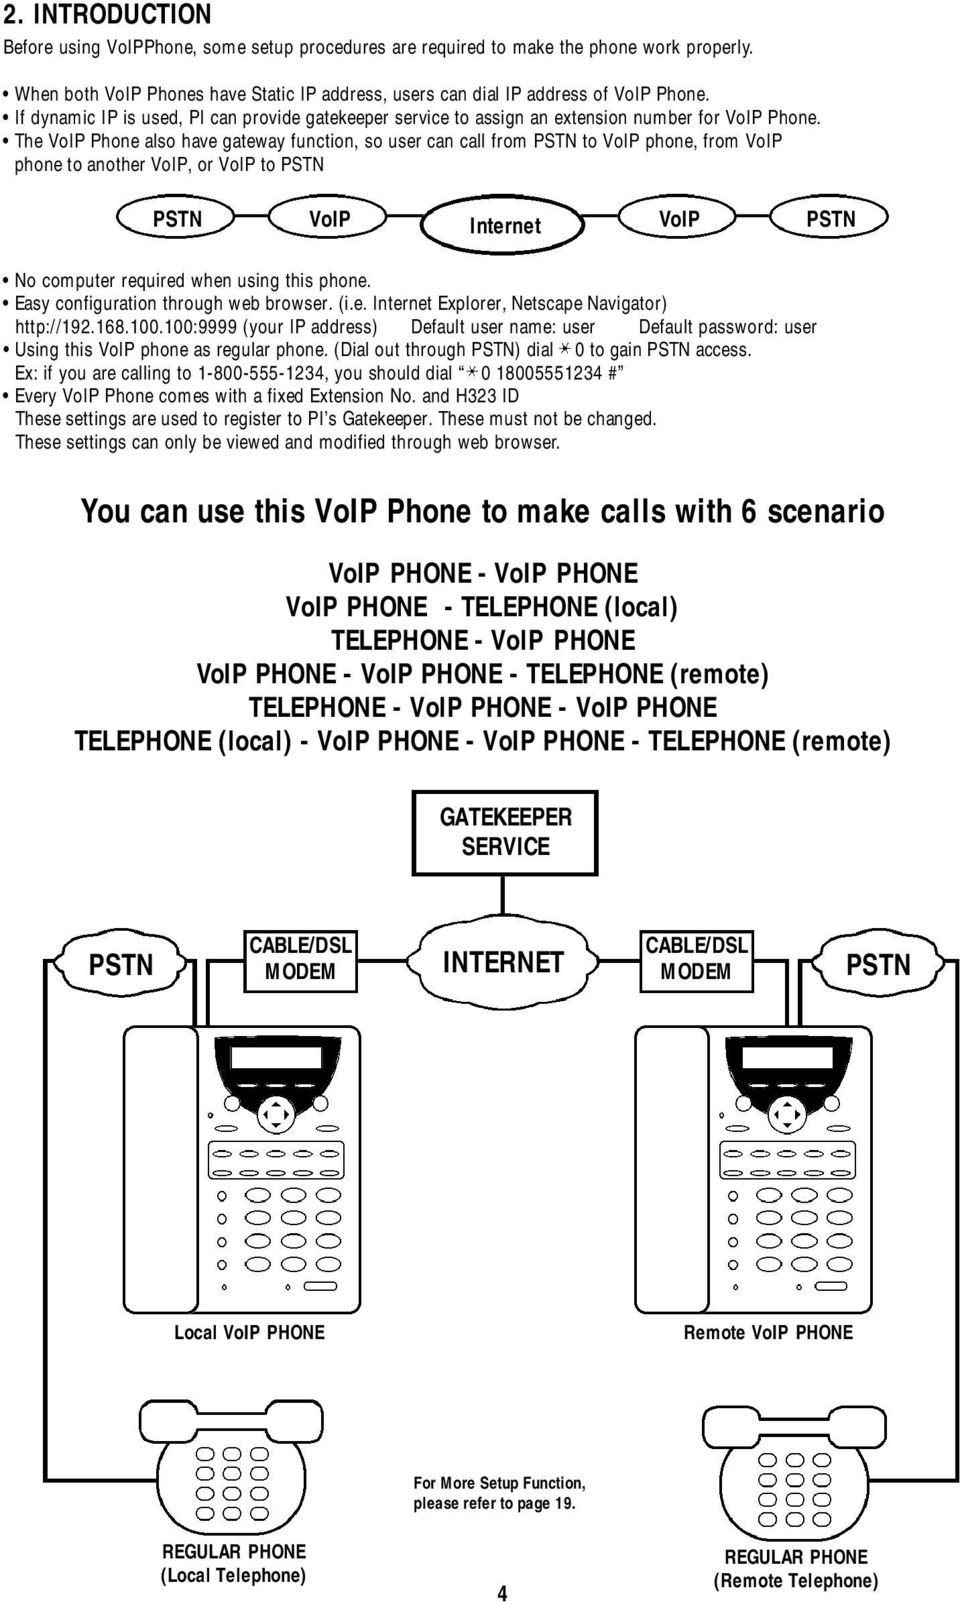 The VoIP Phone also have gateway function, so user can call from PSTN to VoIP phone, from VoIP phone to another VoIP, or VoIP to PSTN PSTN VoIP VoIP PSTN Internet No computer required when using this